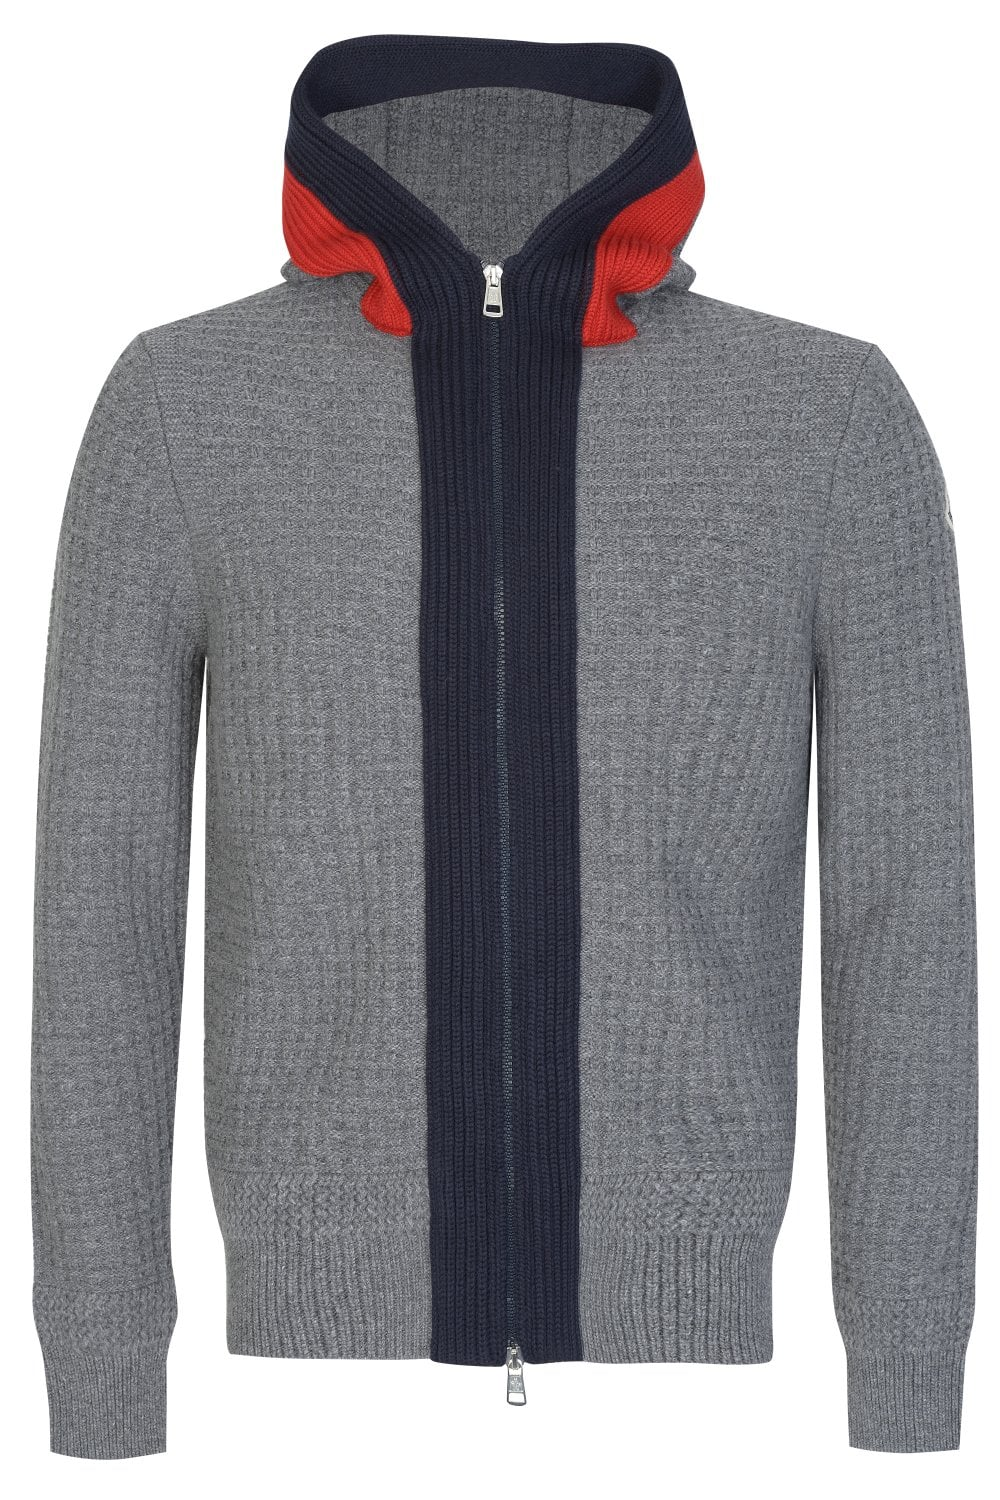 MONCLER Knitted Hooded Grey Top - Clothing from Circle Fashion UK 95787db09